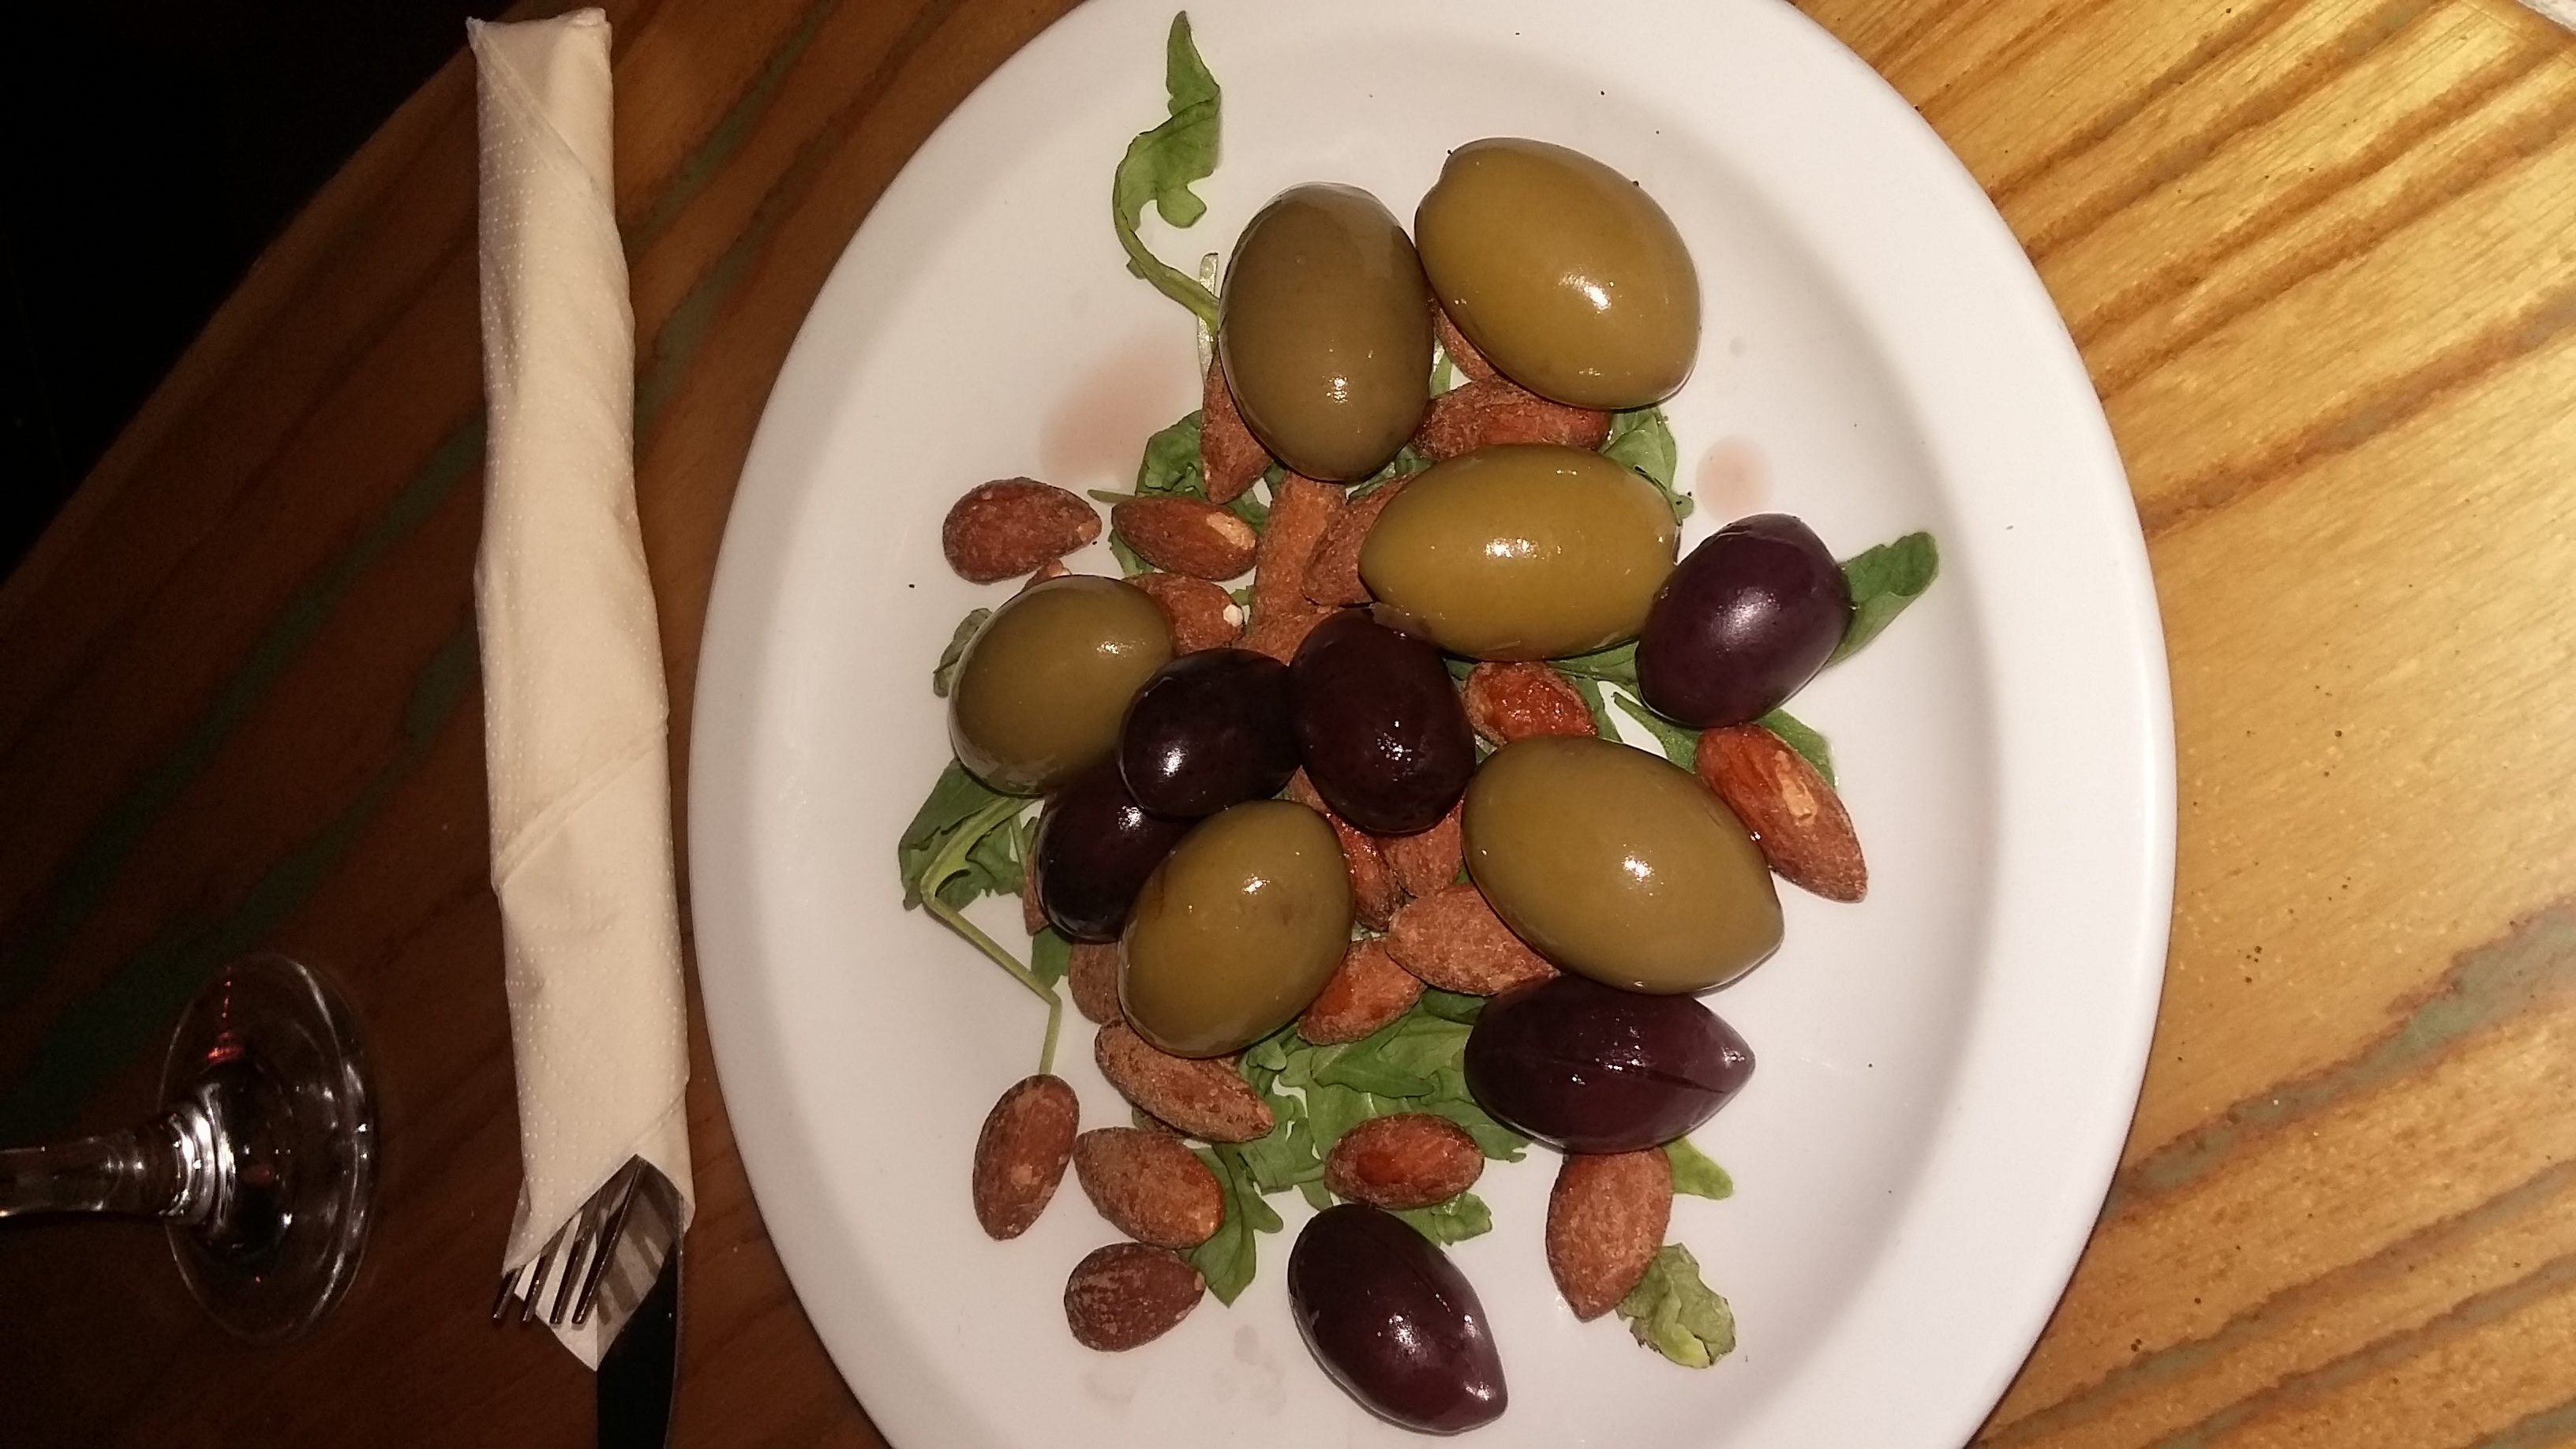 Olives. Photo: Kirstin Hannaford